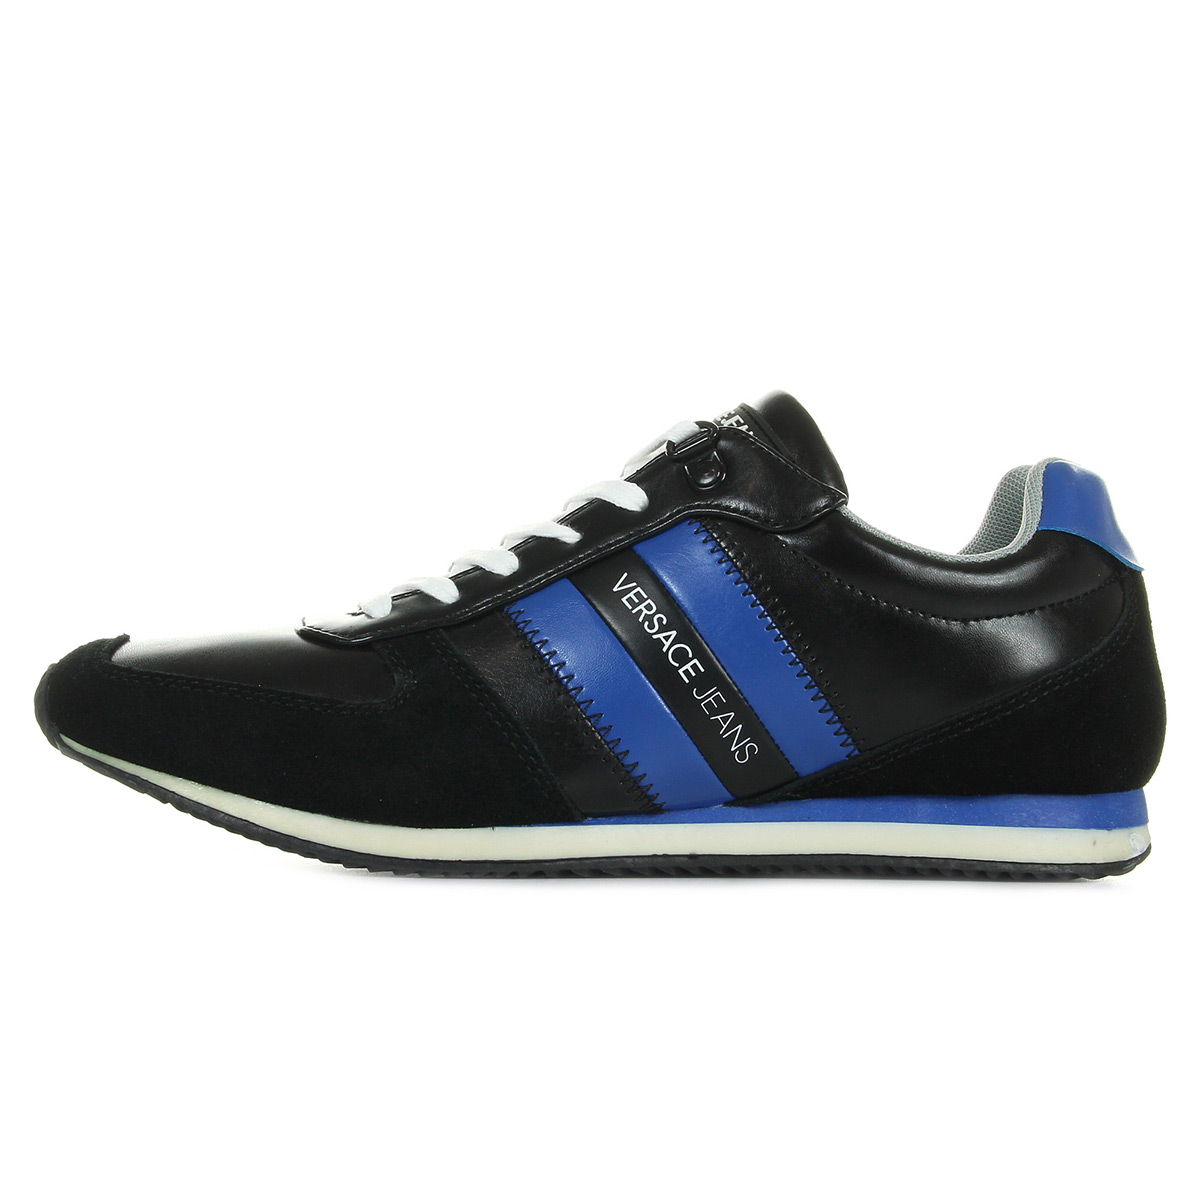 Versace Jeans Sneaker Uomo DisA3 Coated/ Suede E0YPBSA3M57, Baskets mode homme